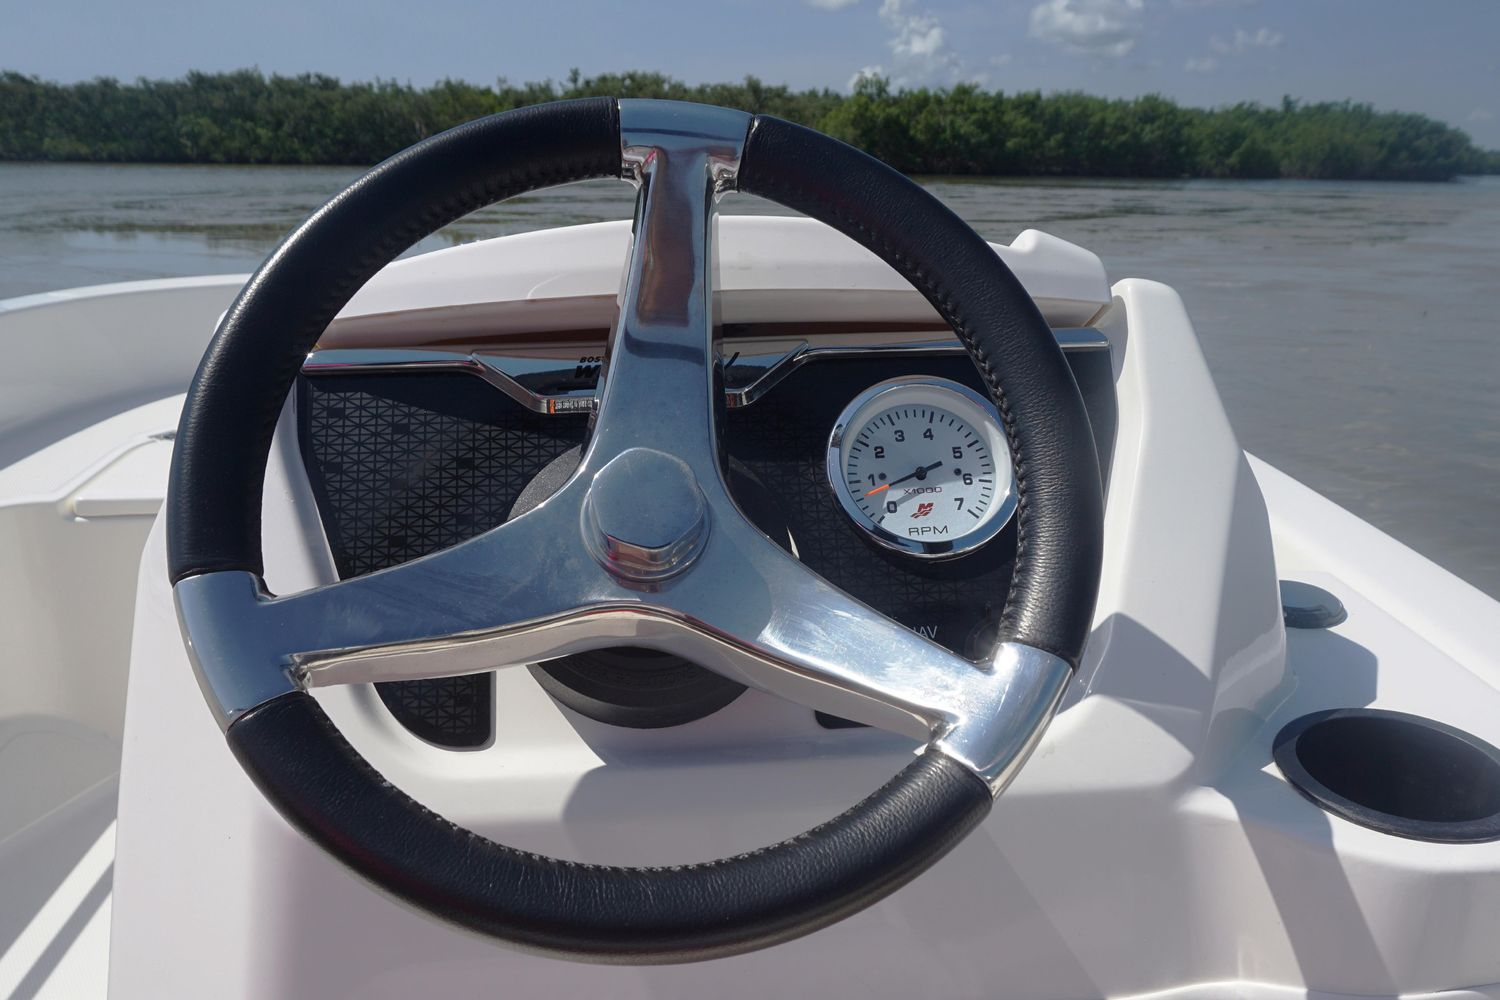 2022 Boston Whaler                                                              130 Super Sport Image Thumbnail #11